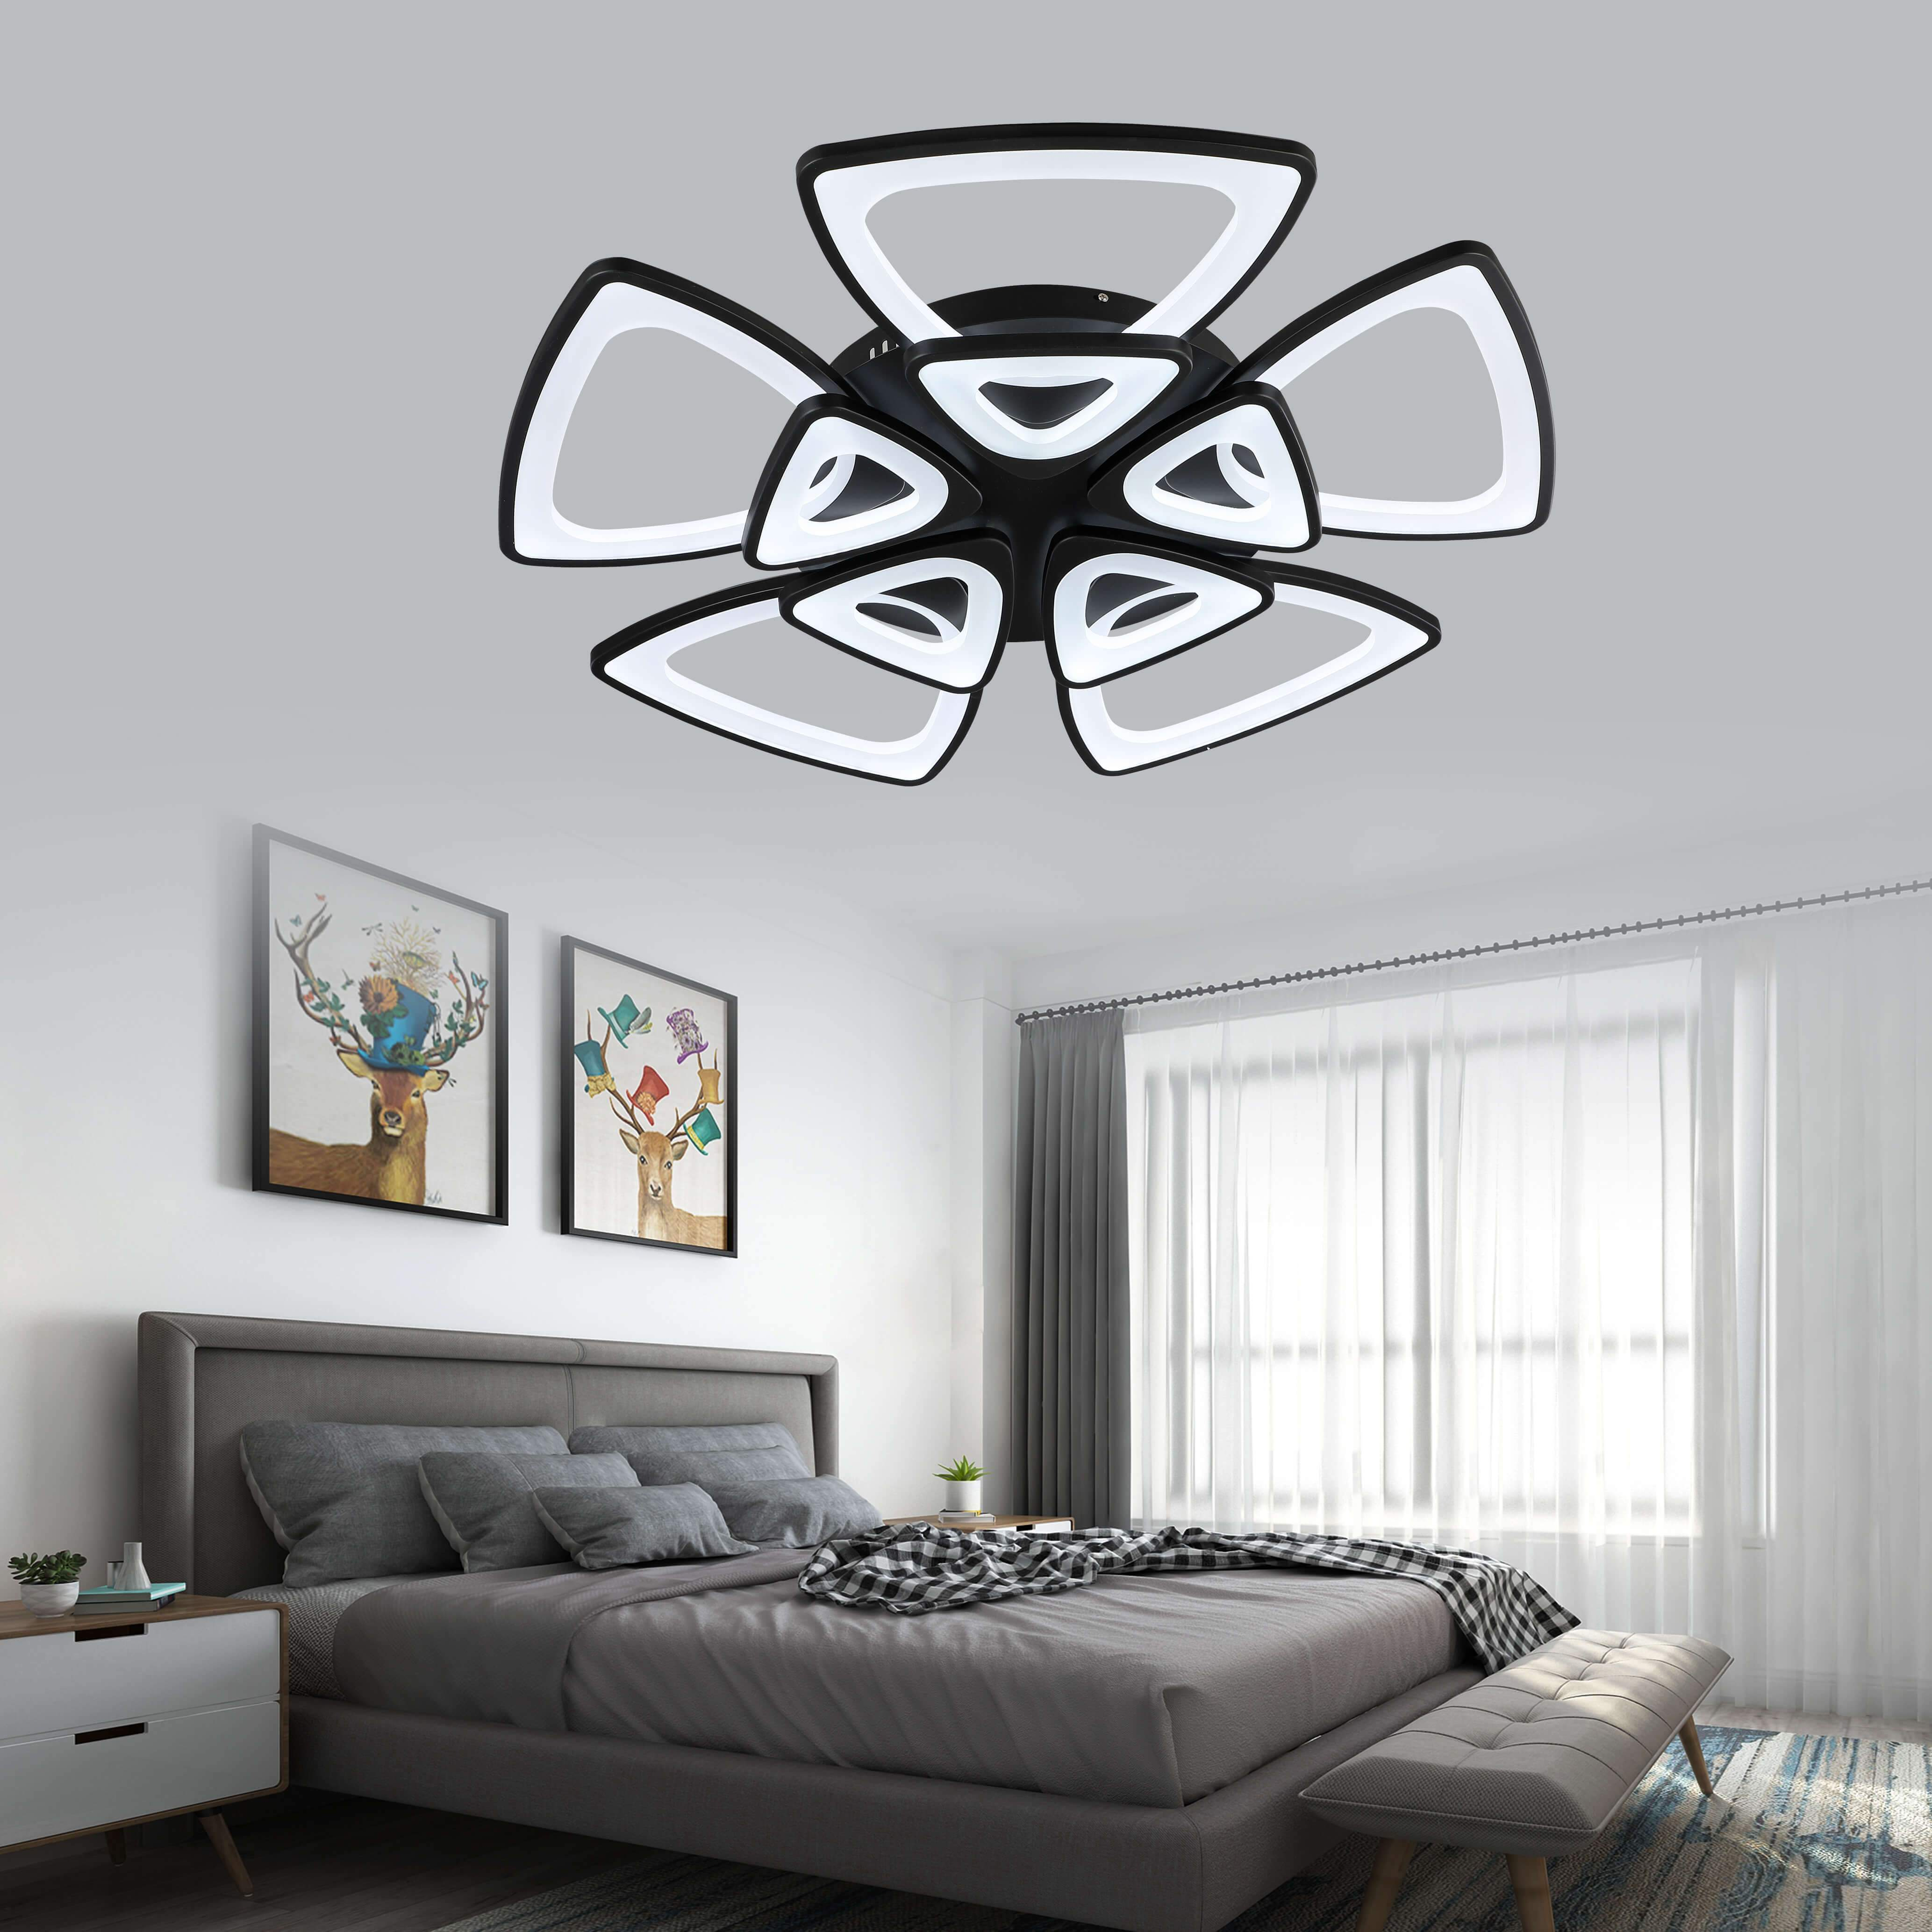 M Lily LED Ceiling Light , LED Ceiling Light , VIVA LED